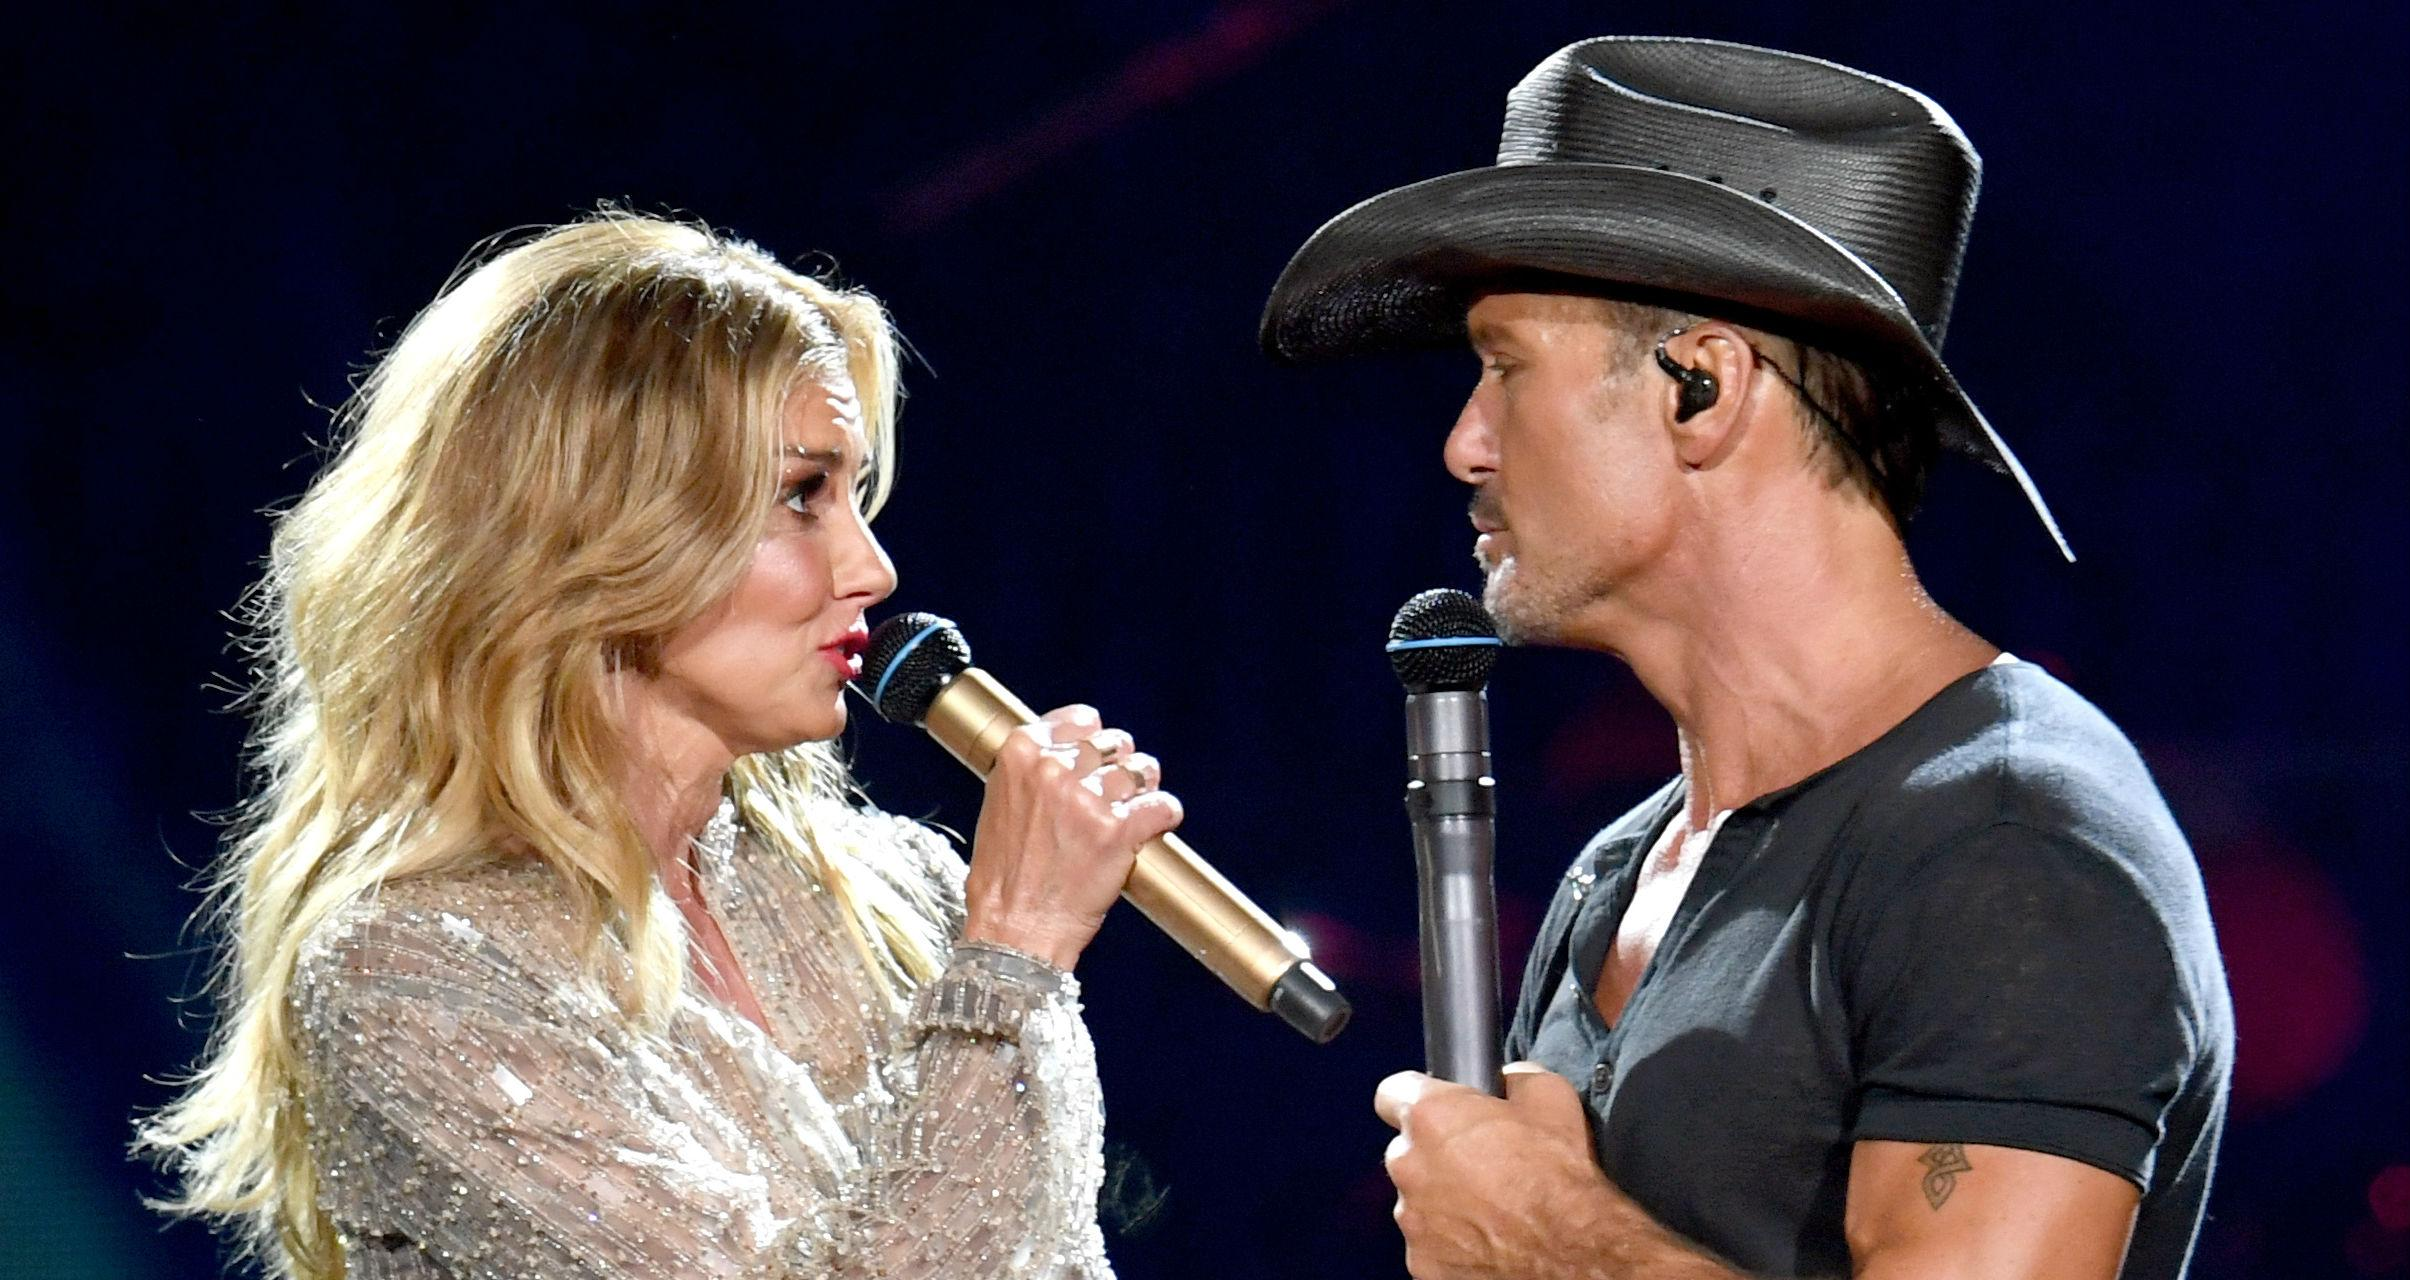 Tim McGraw and Faith Hill to make tour stop in Richmond